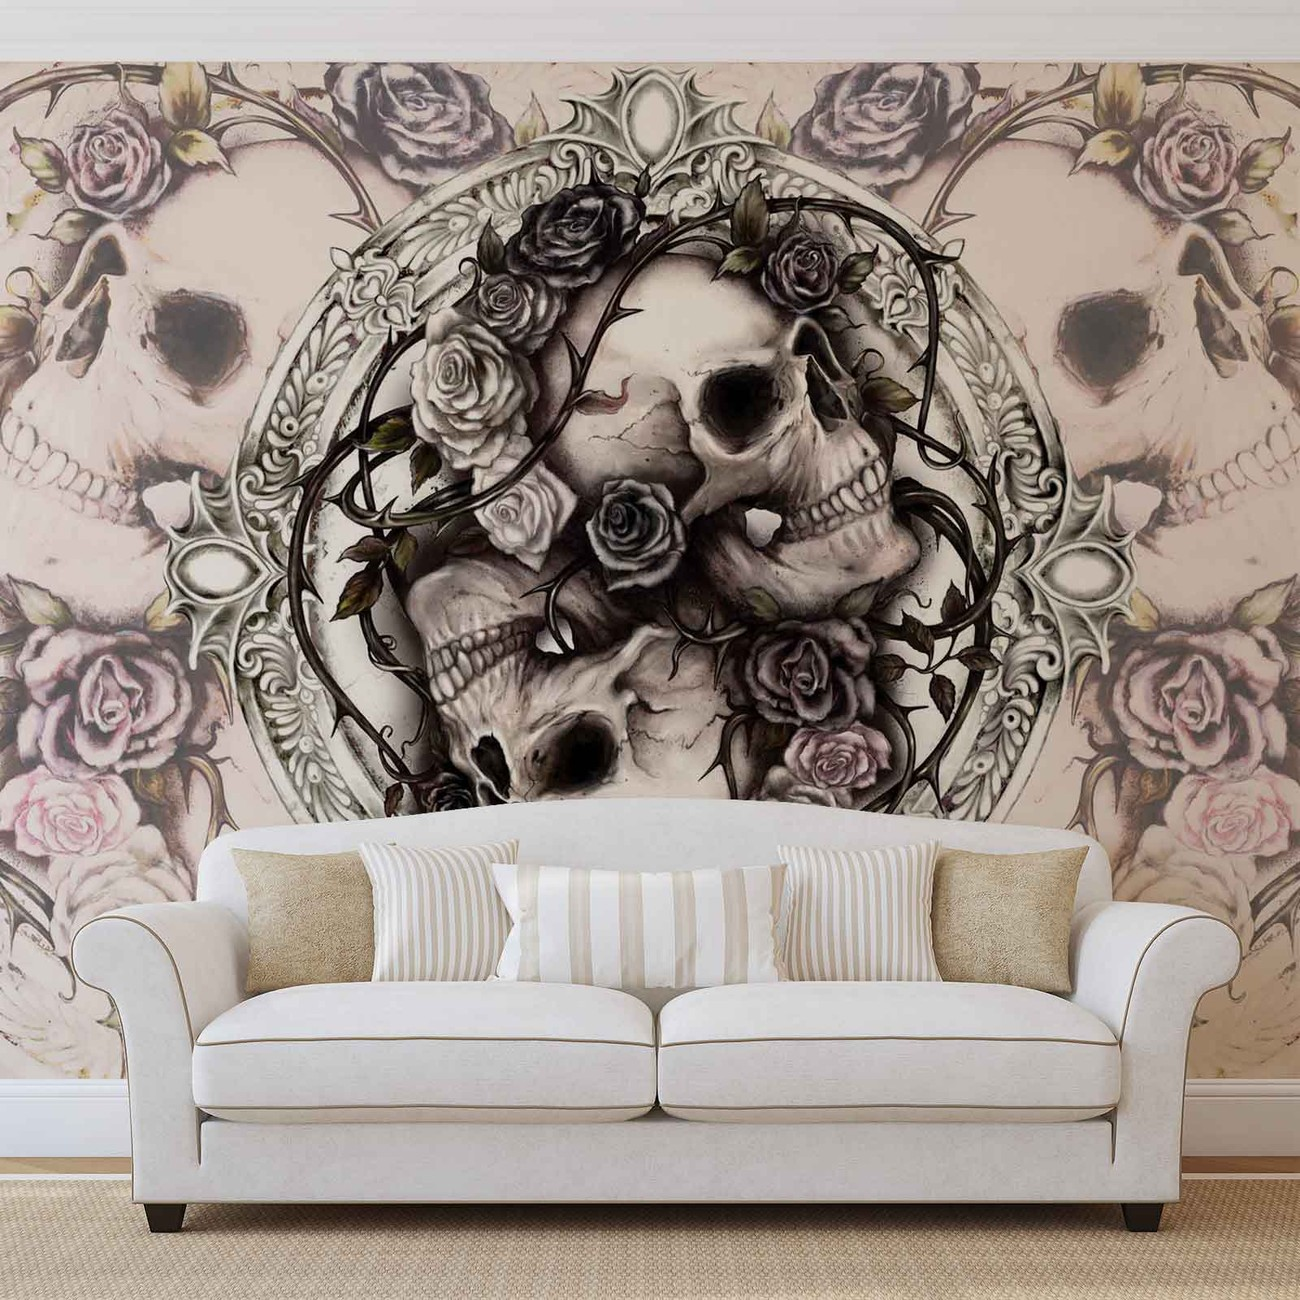 castle rose wall mural - photo #14